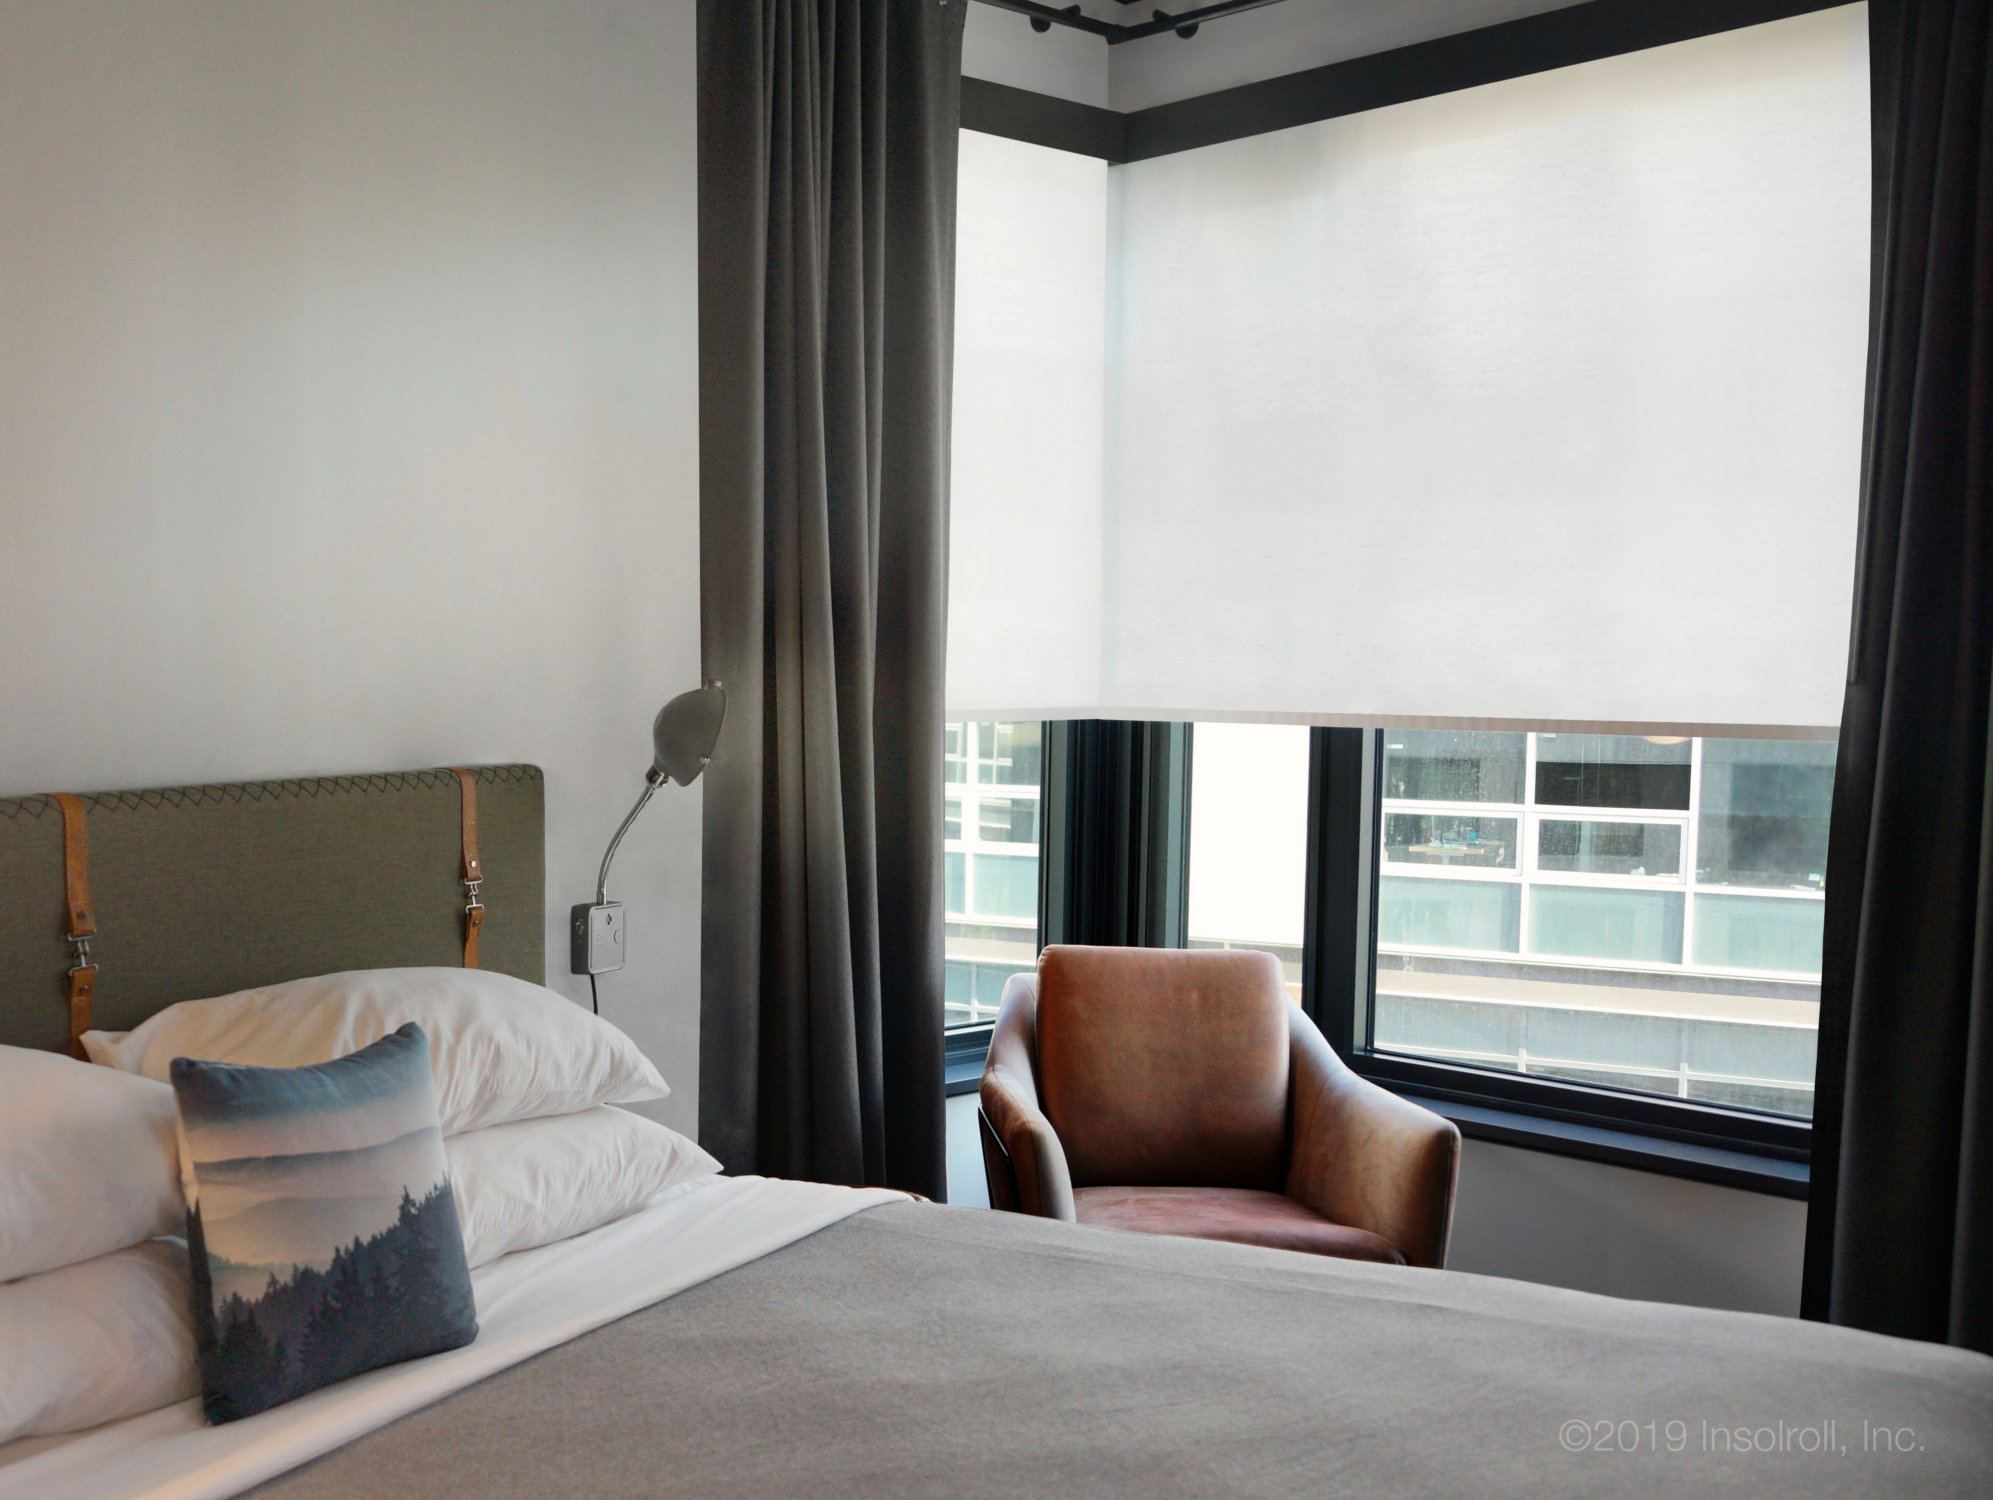 Hotel Window Shades | Insolroll With Regard To All Seasons Blackout Window Curtains (Image 16 of 20)